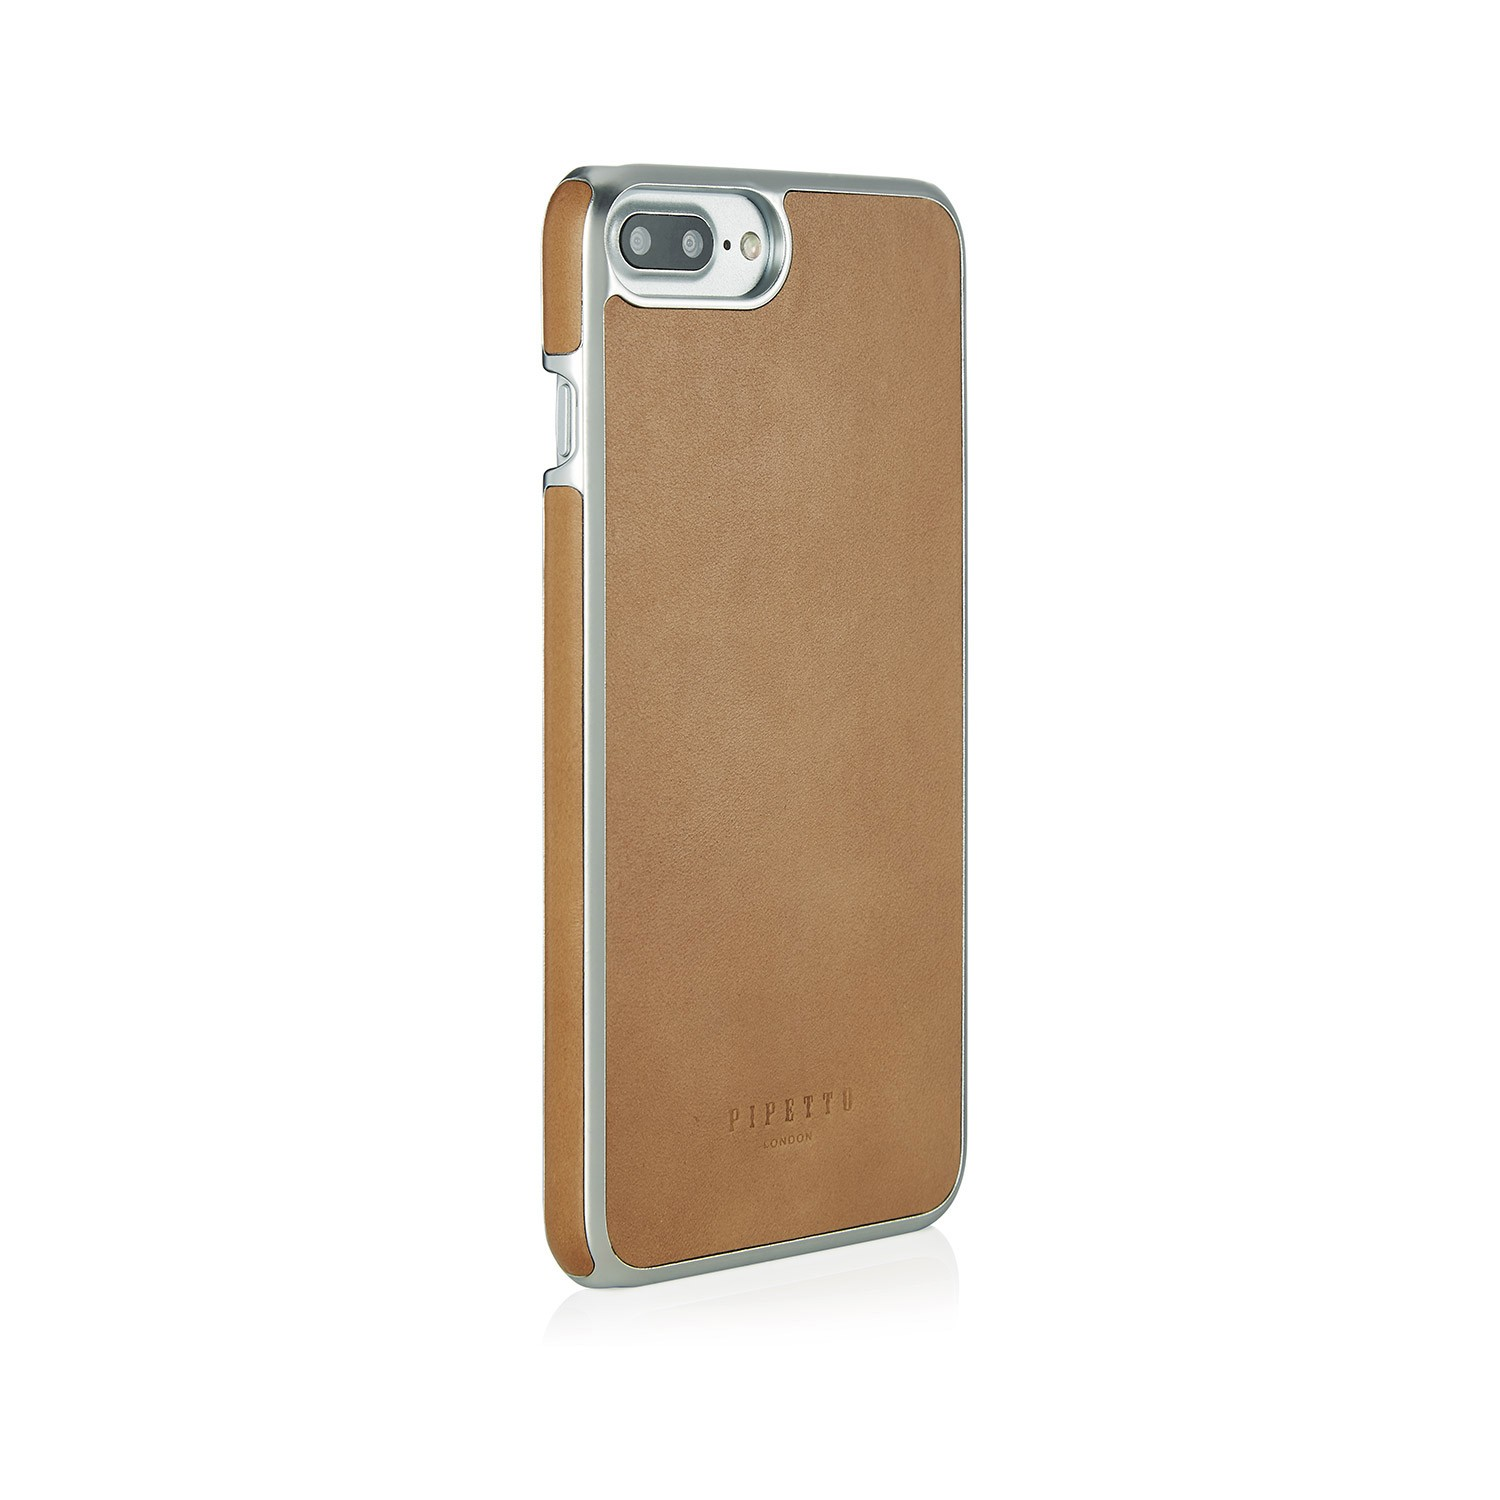 huge selection of f3b67 23924 iPhone 7 Plus Snap Case Magnetic - Classic Tan (Also Fits iPhone 6/6S Plus  and iPhone 8 Plus)